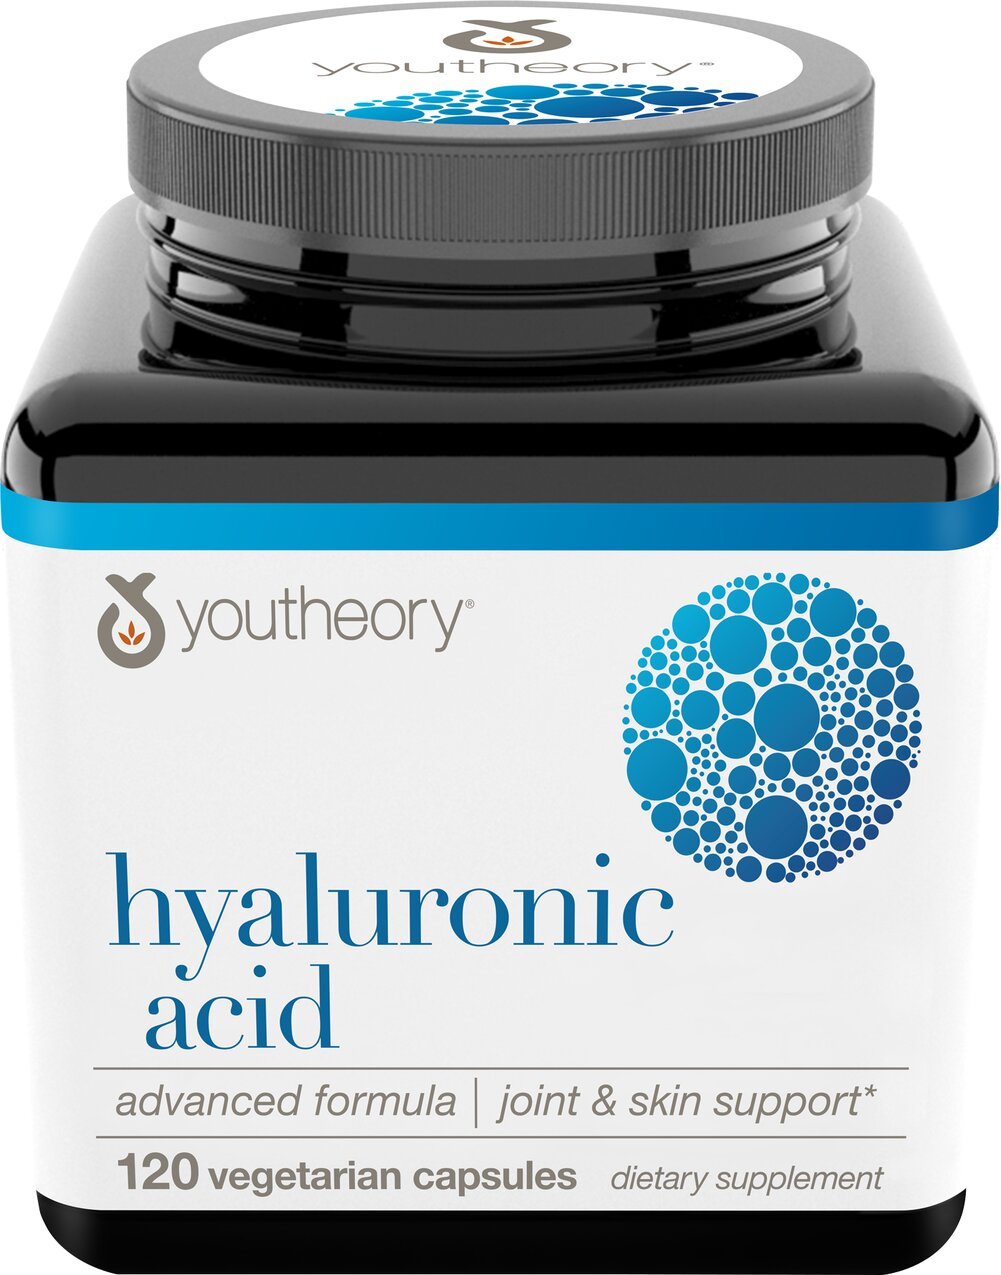 Hyaluronic Acid Advanced Formula <p><strong>From the Manufacturer's Label:</strong></p><p>• Joint Cushioning**<br />• Helps to Promote Better Skin**<br /><br />Youtheory™ Hyaluronic Acid Advanced is our carefully sourced formulation of natural elements which have been used for centuries to help produce more supple skin and support healthy joint function as we advance in age.**<br /><br />By joining Hyaluronic Acid with a host of the